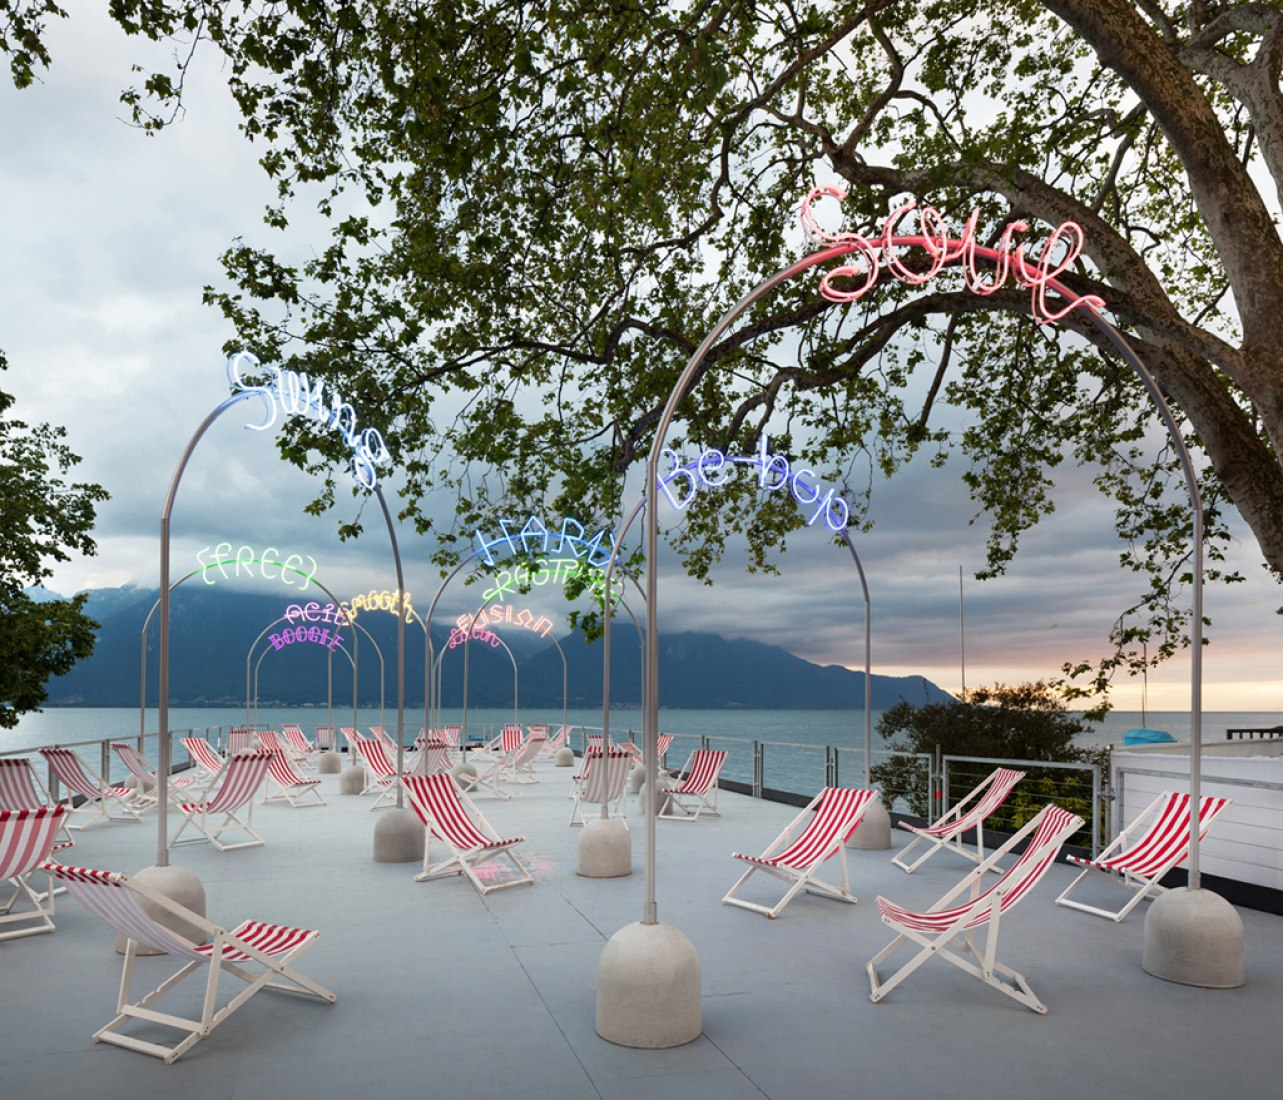 Deck with deckchairs. Bada Bing boardwalk for Montreux Jazz Festival 2013 by Bureau A. Photograph © Dylan Perrenoud.